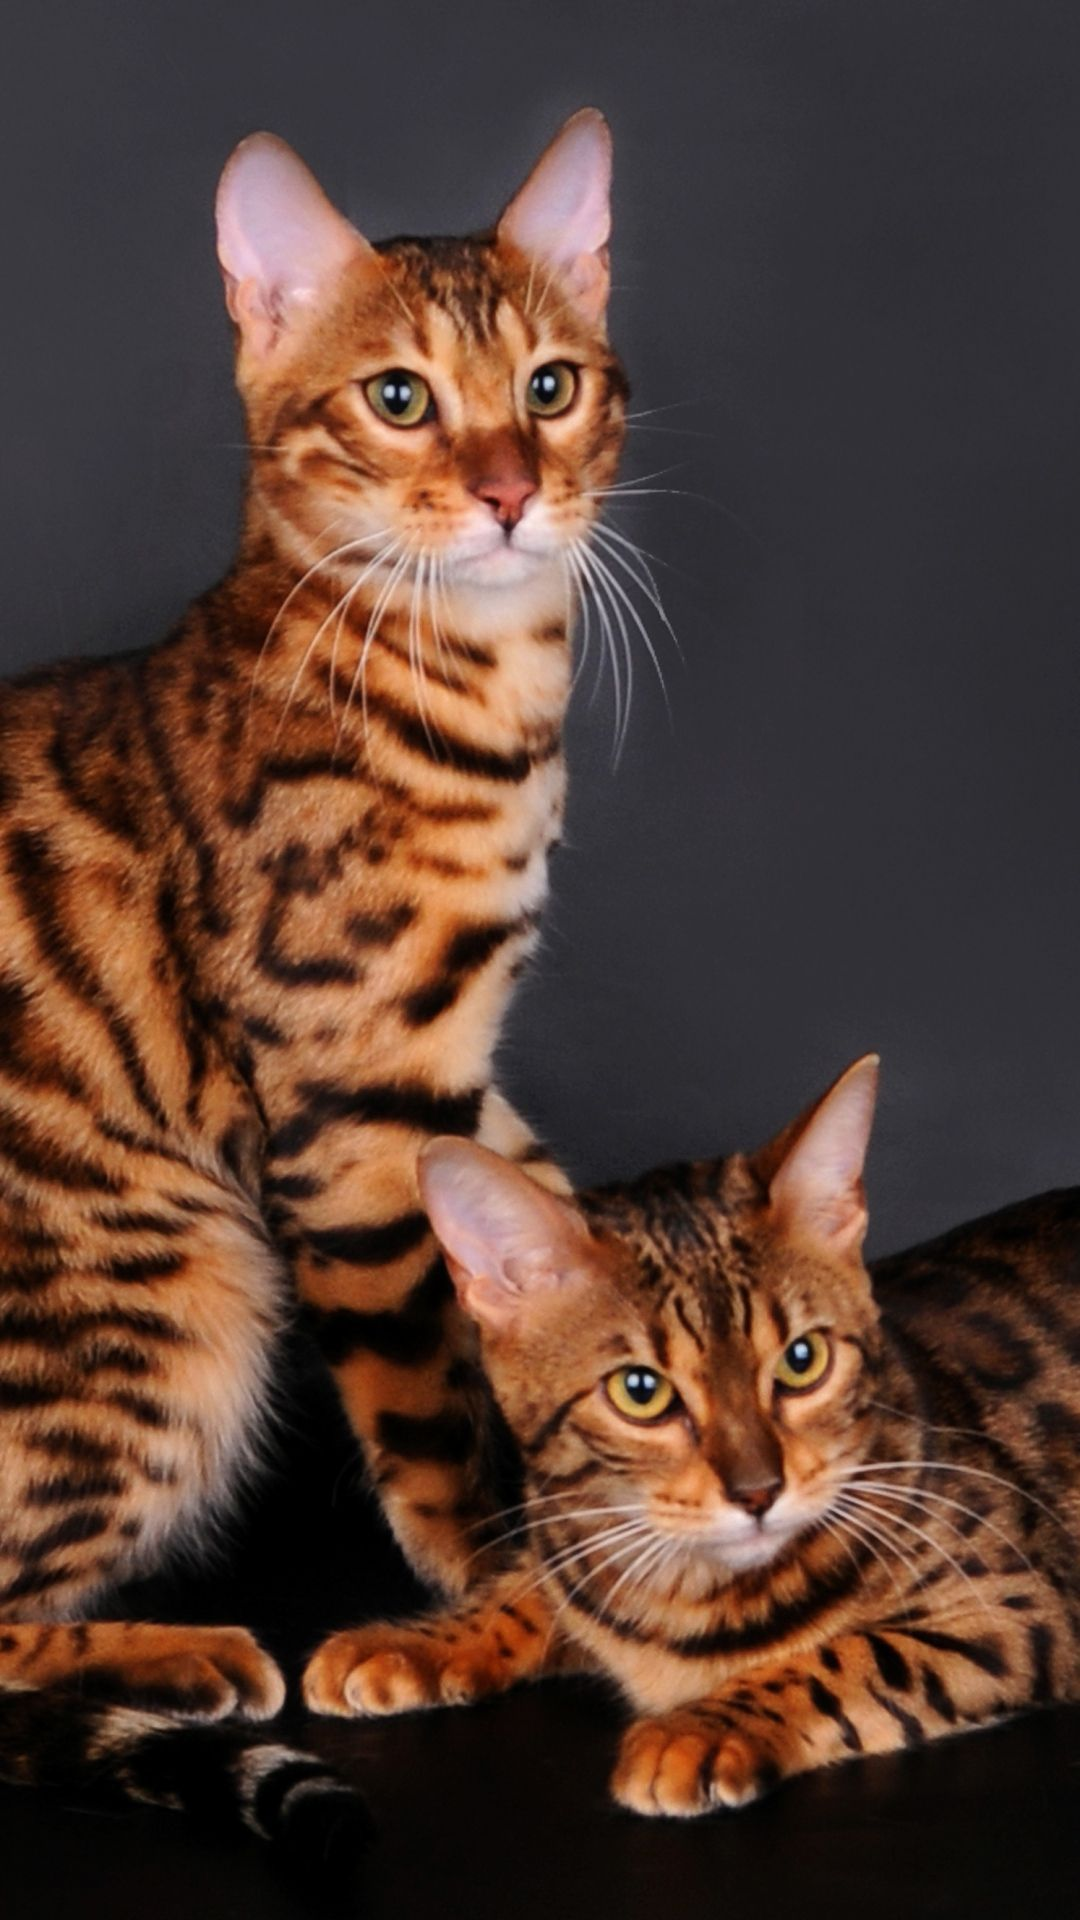 Bengal cats - Domestic cat | Bengal | Pinterest | Bengal, Cat and ...